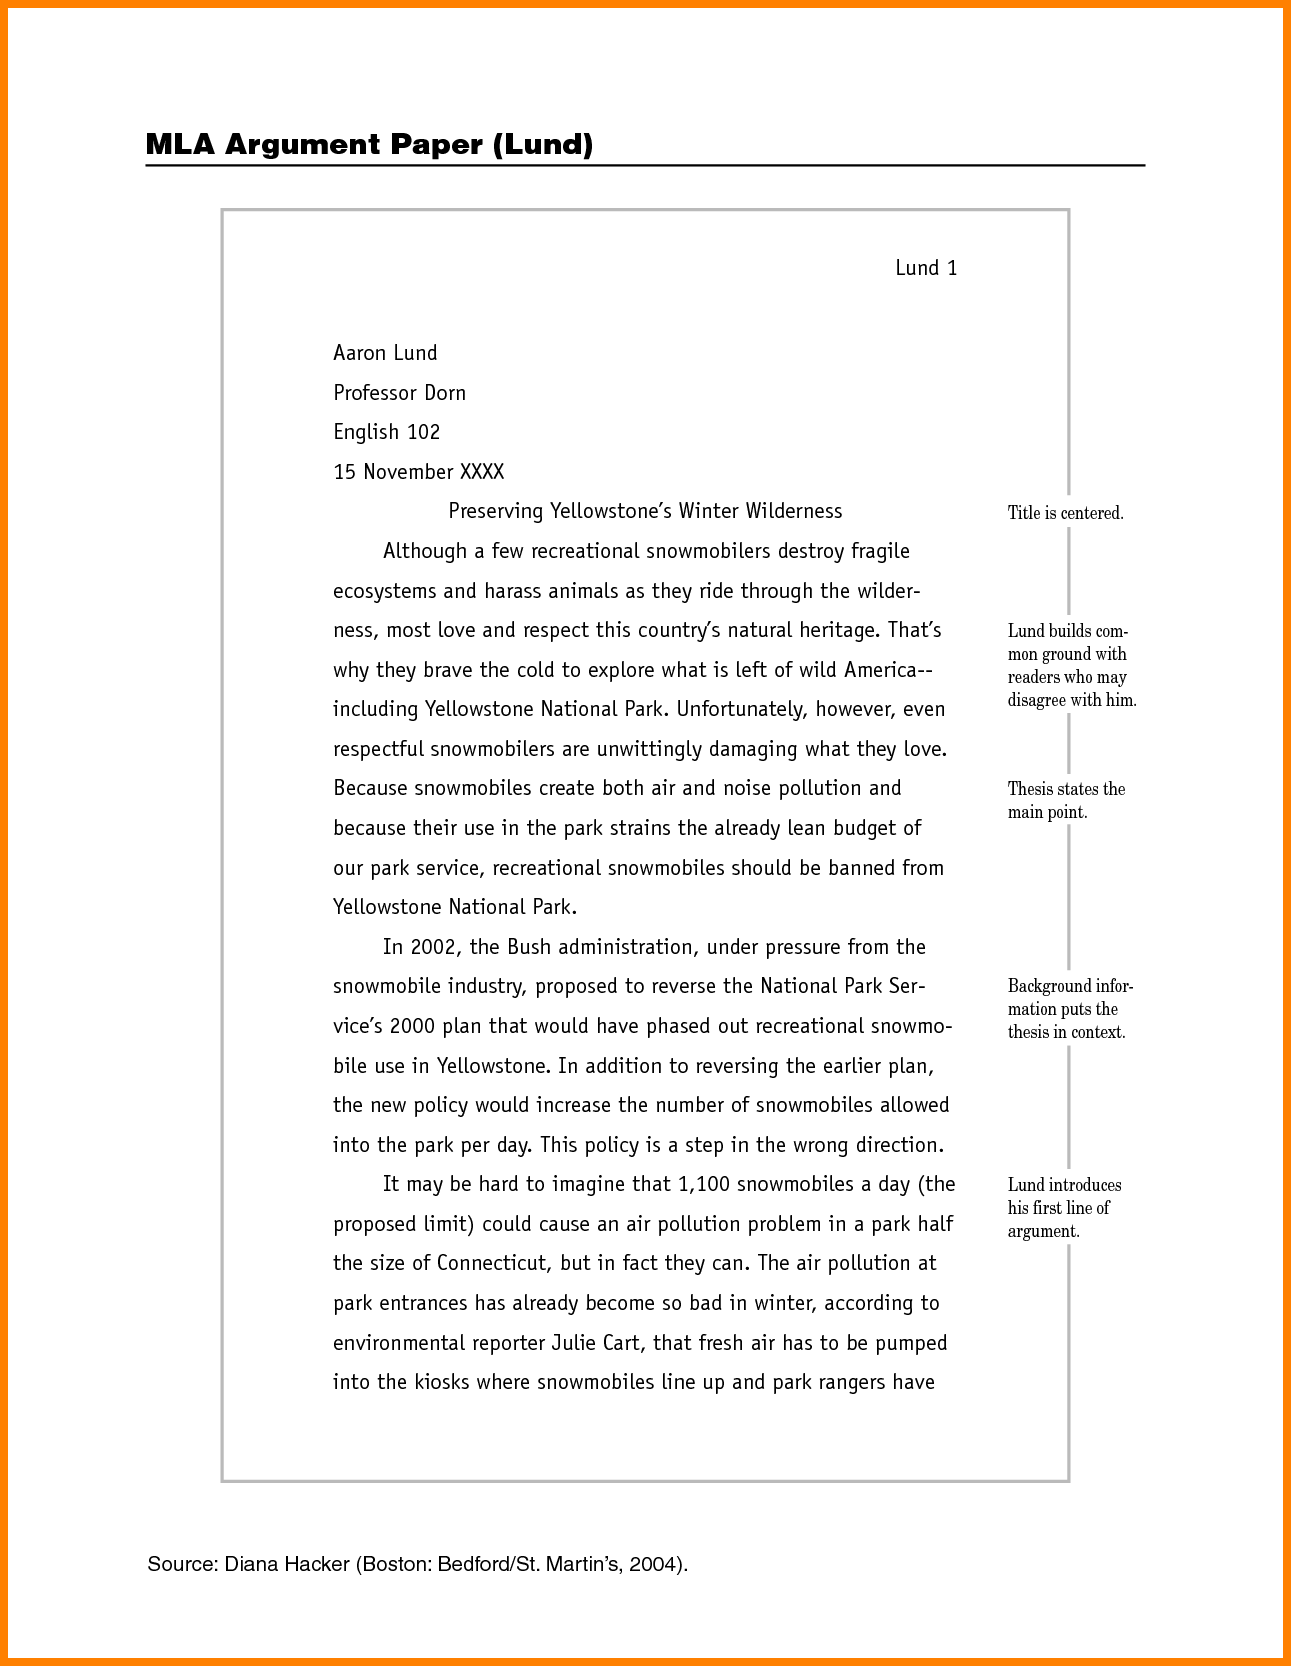 009 How To Write Research Paper Sample What Is Mla Format For Essays Essay Unique Proper An 8 Example Full